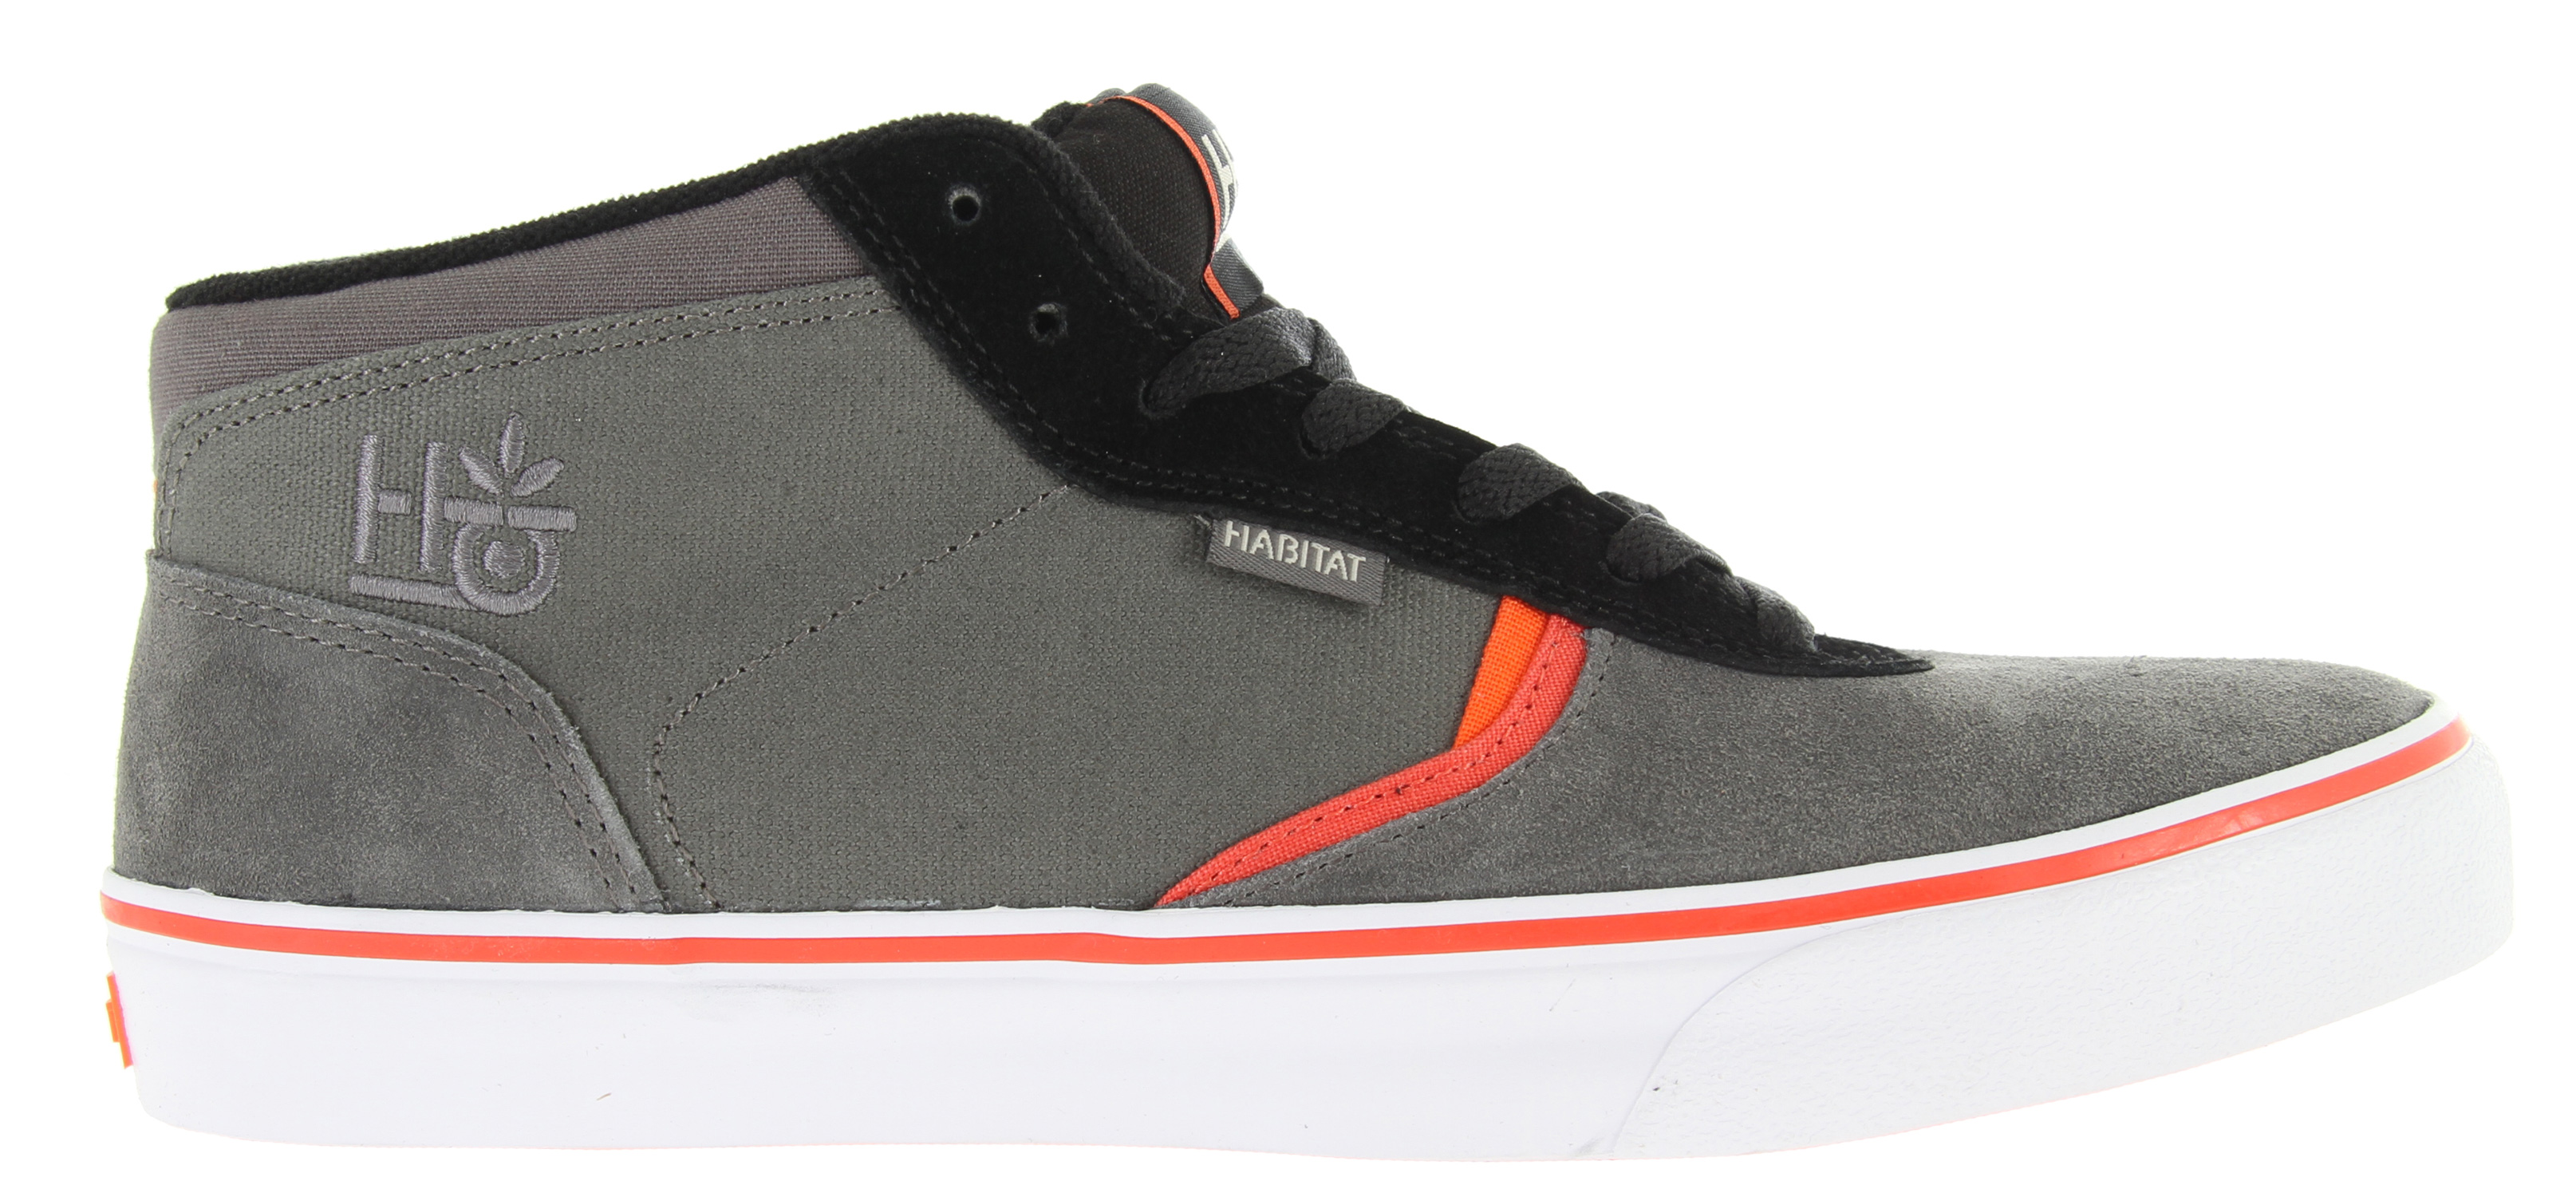 Skateboard Key Features of the Habitat Lark Mid In4Mation Skate Shoes: Traditional low profile skate silhouette Thin tongue and collar padding Seamless toecap Suede canvas and synthetic nubuck upper Recycled regrind/natural gum outsole Assembled with water-based glues Vulcanized outsole construction Premium PU footbed - $64.95